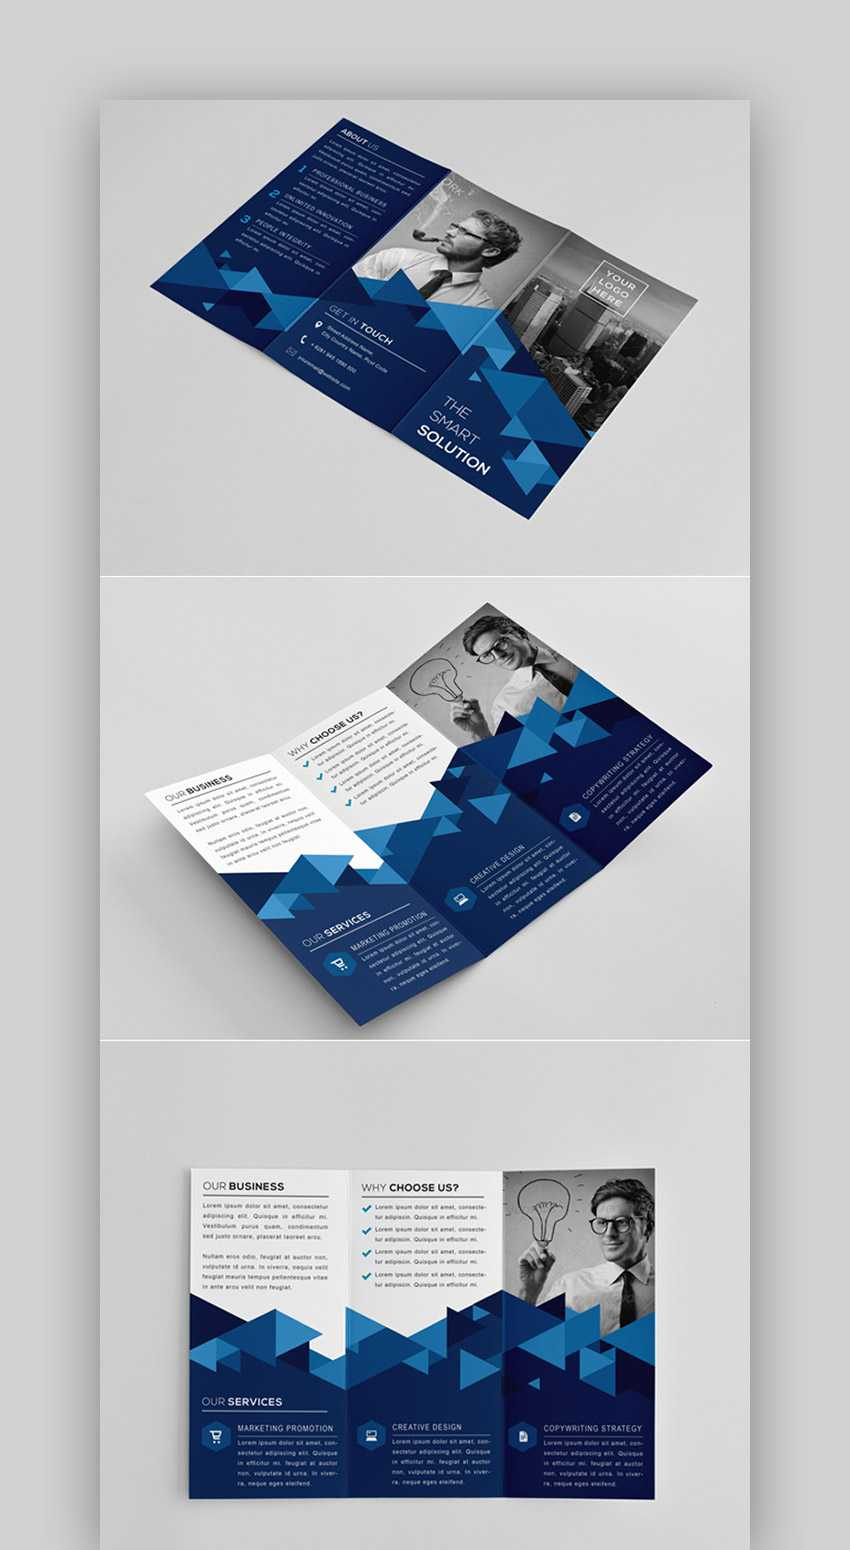 016 Tri Fold Brochure Template Indesign The Modern Intended For Tri Fold Brochure Template Indesign Free Download